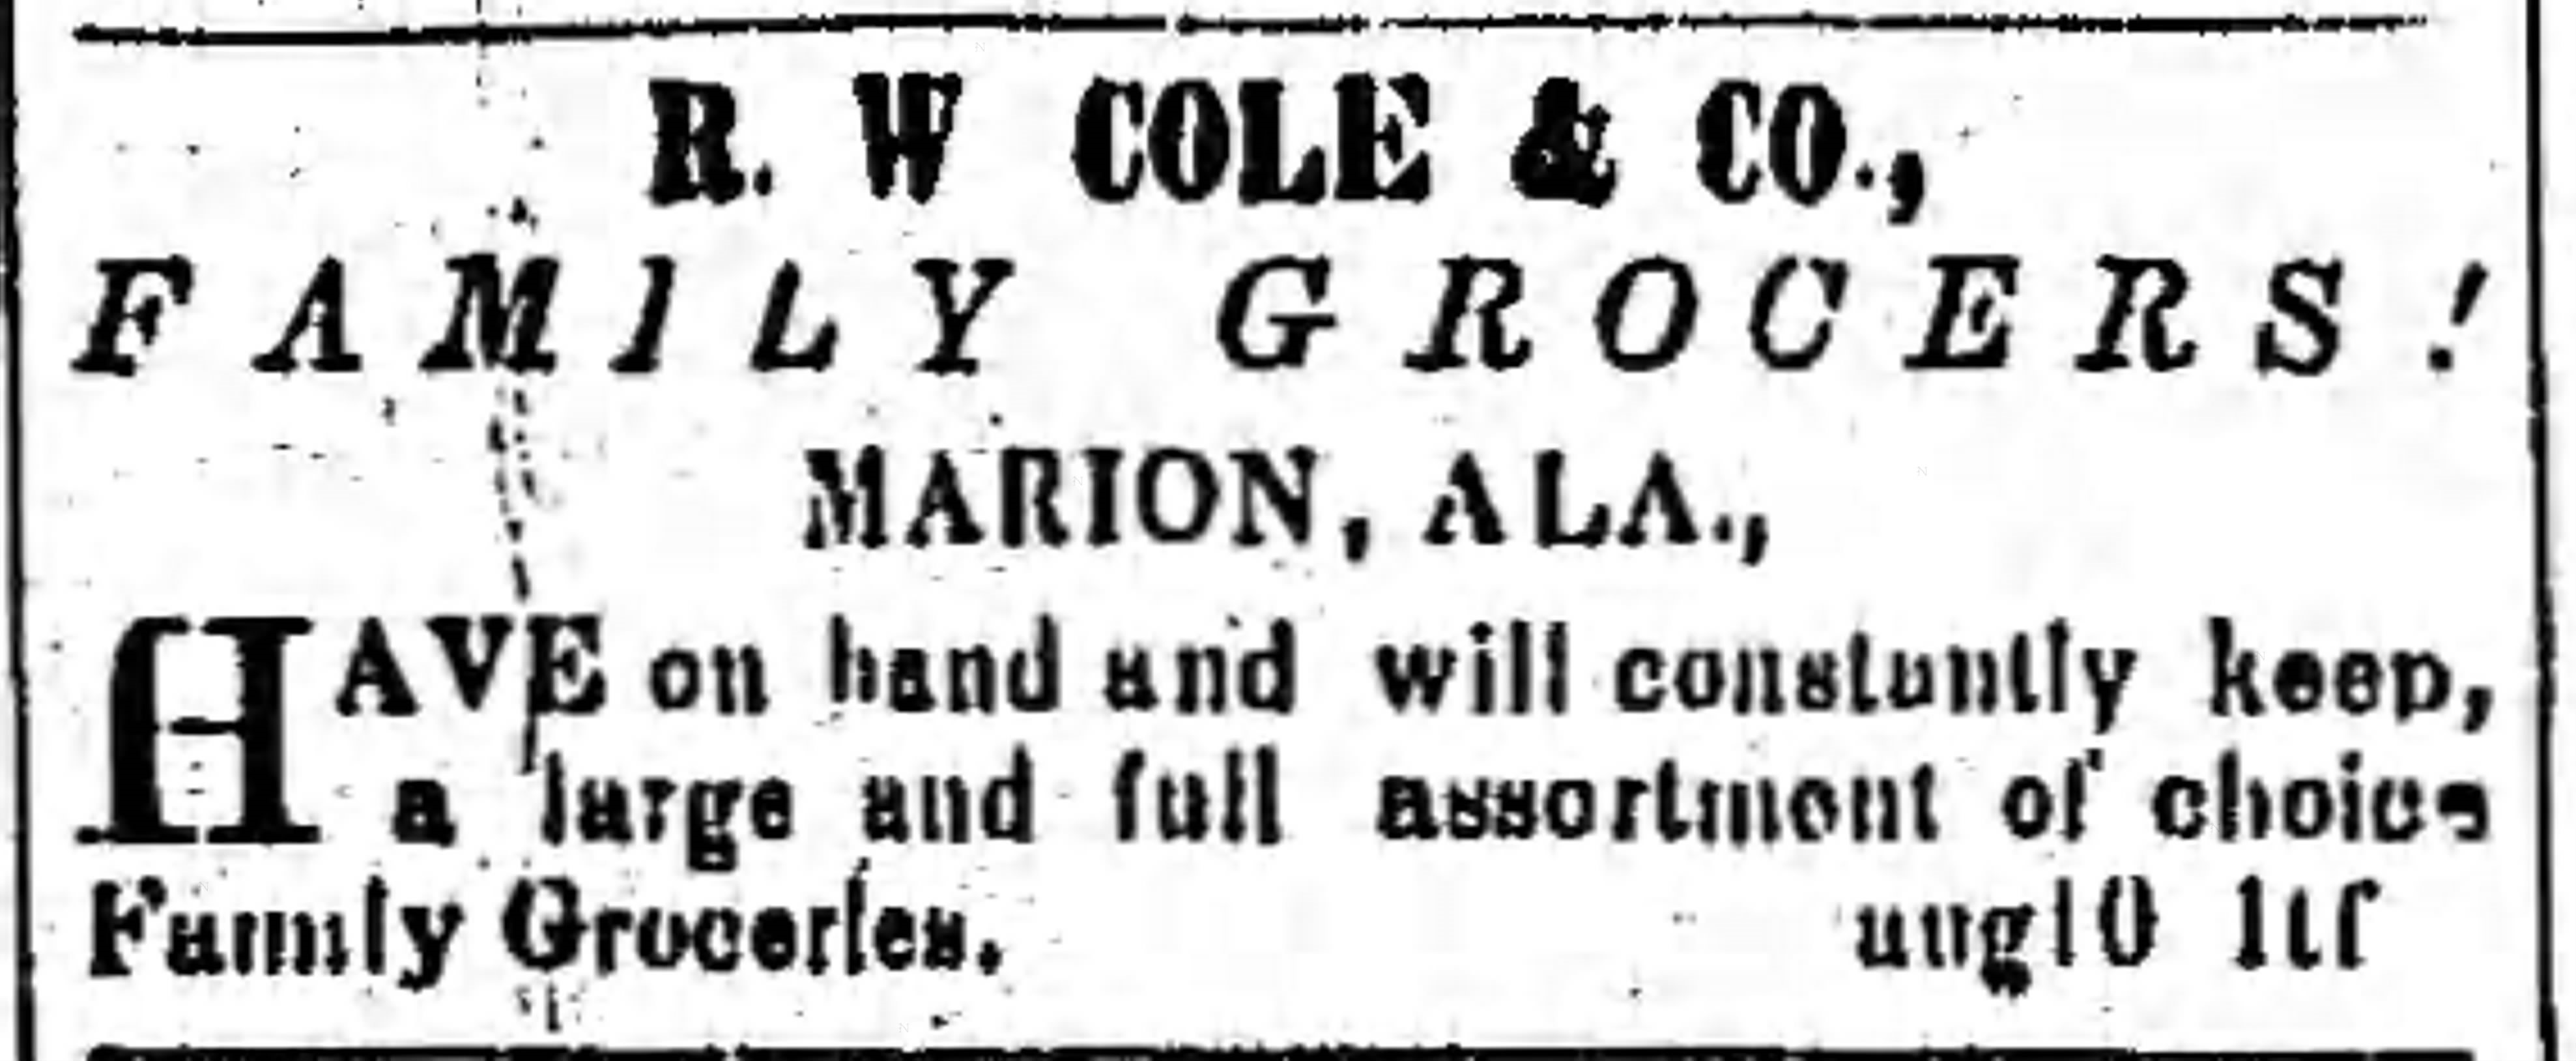 PATRON –  News about local people and new businesses in Marion, Perry Co., Ala. in 1865